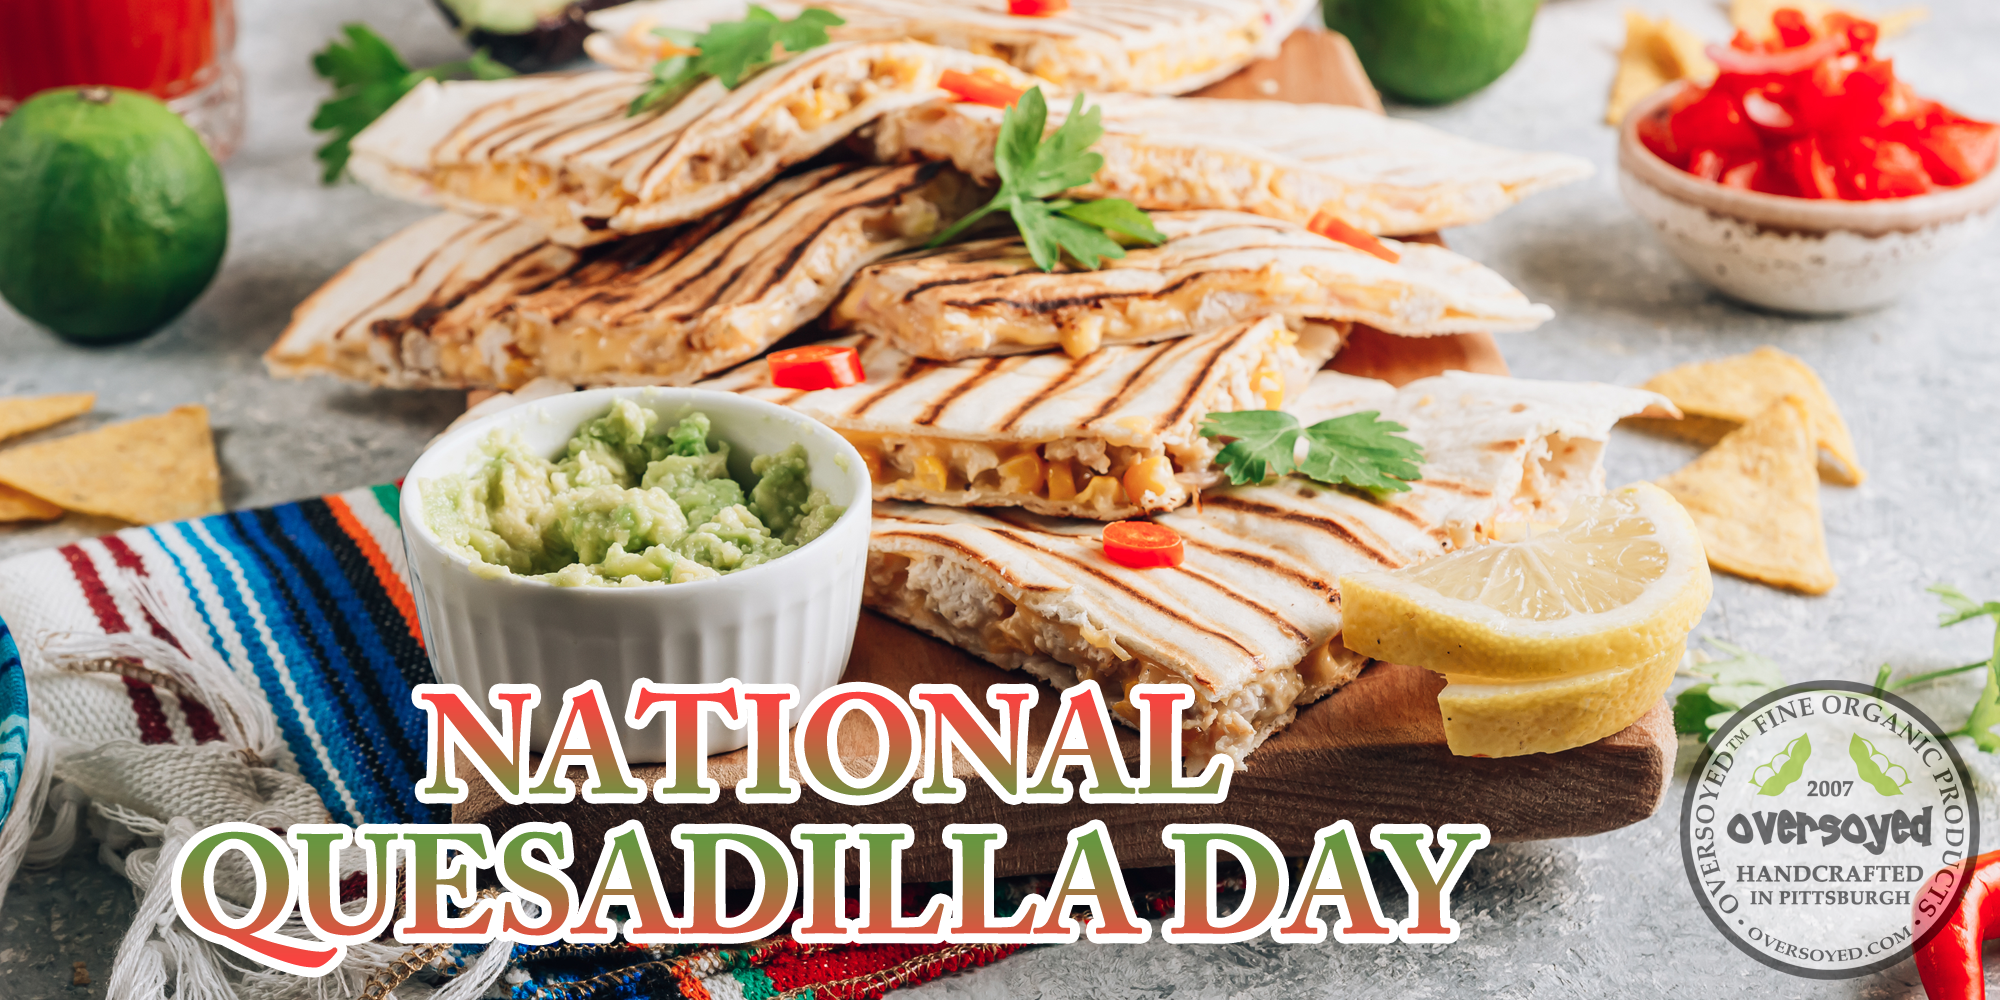 OverSoyed Fine Organic Products - National Quesadilla Day